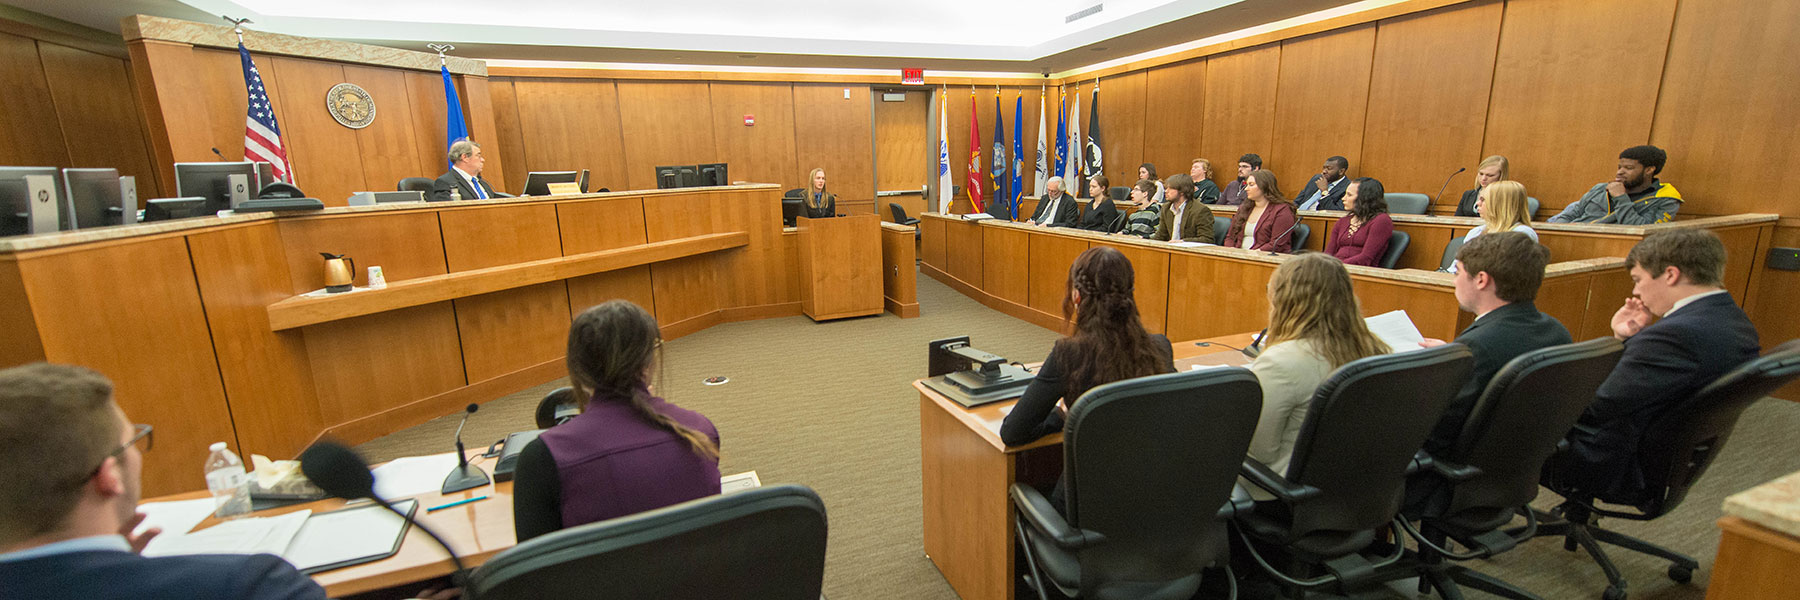 Legal studies students carry out a mock trial in a courtroom.